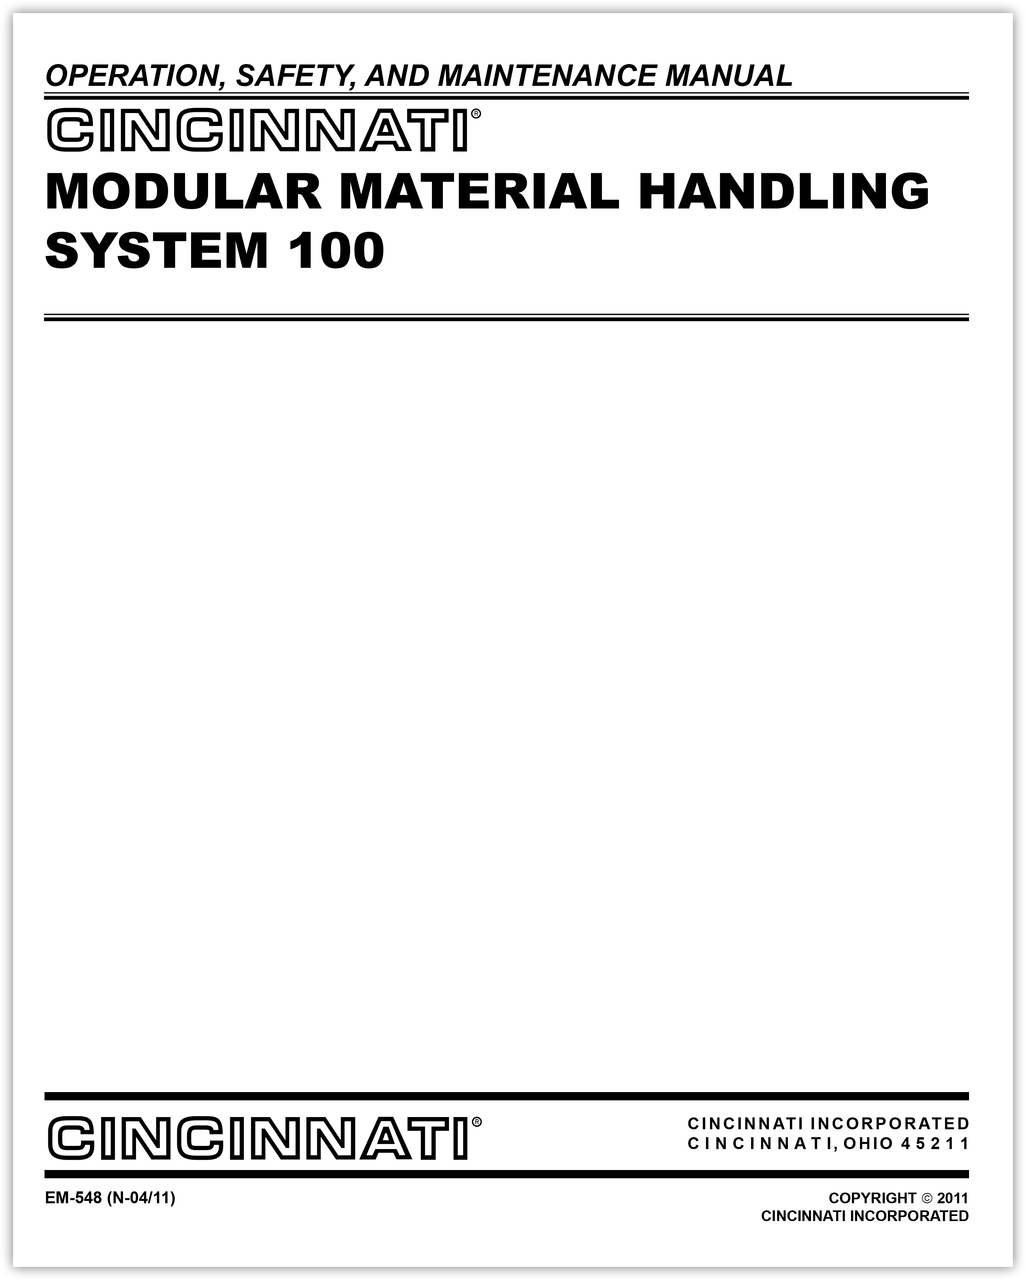 EM-548: N-0411_MMHS-100 Operation Safety Maintenance Manual